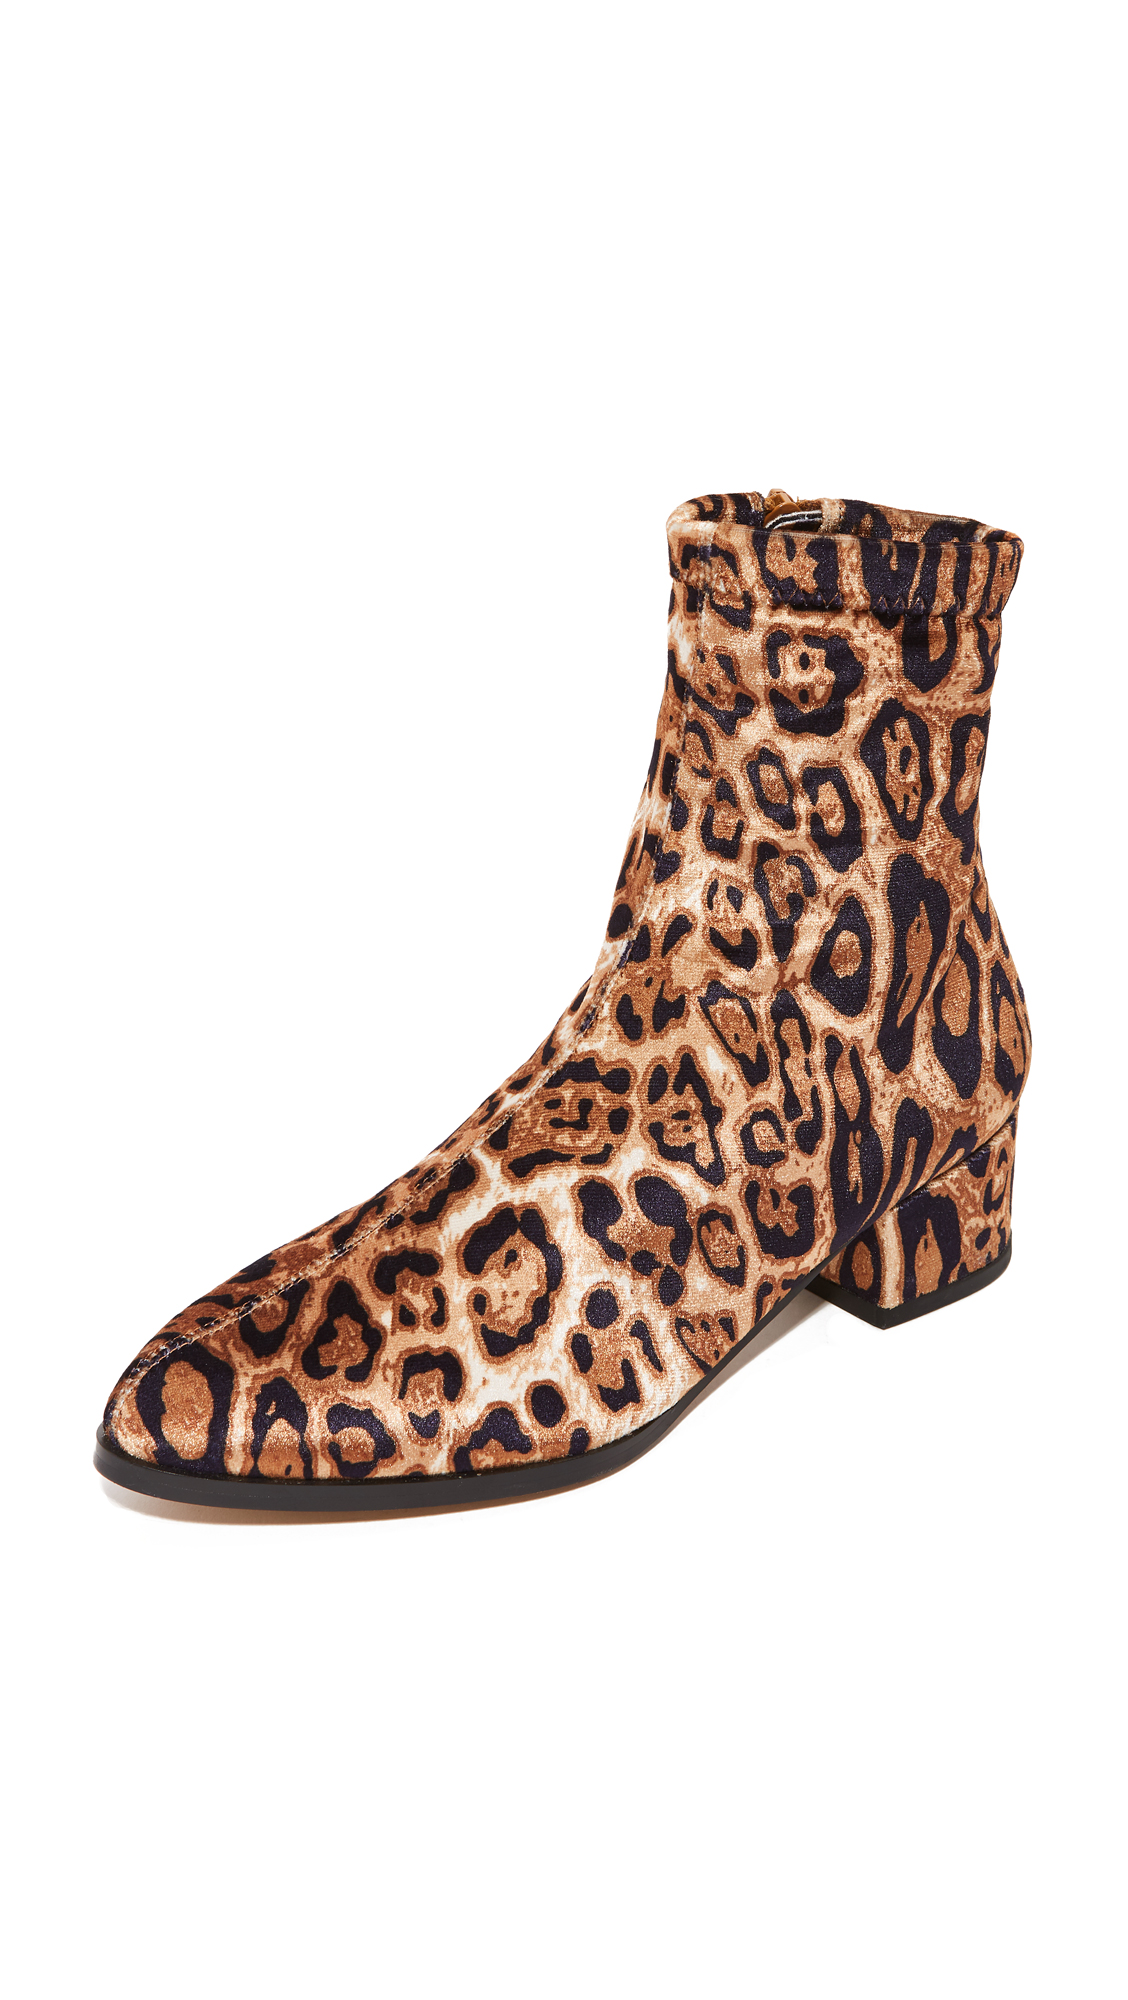 Matiko Jeanne Ankle Boots - Leopard